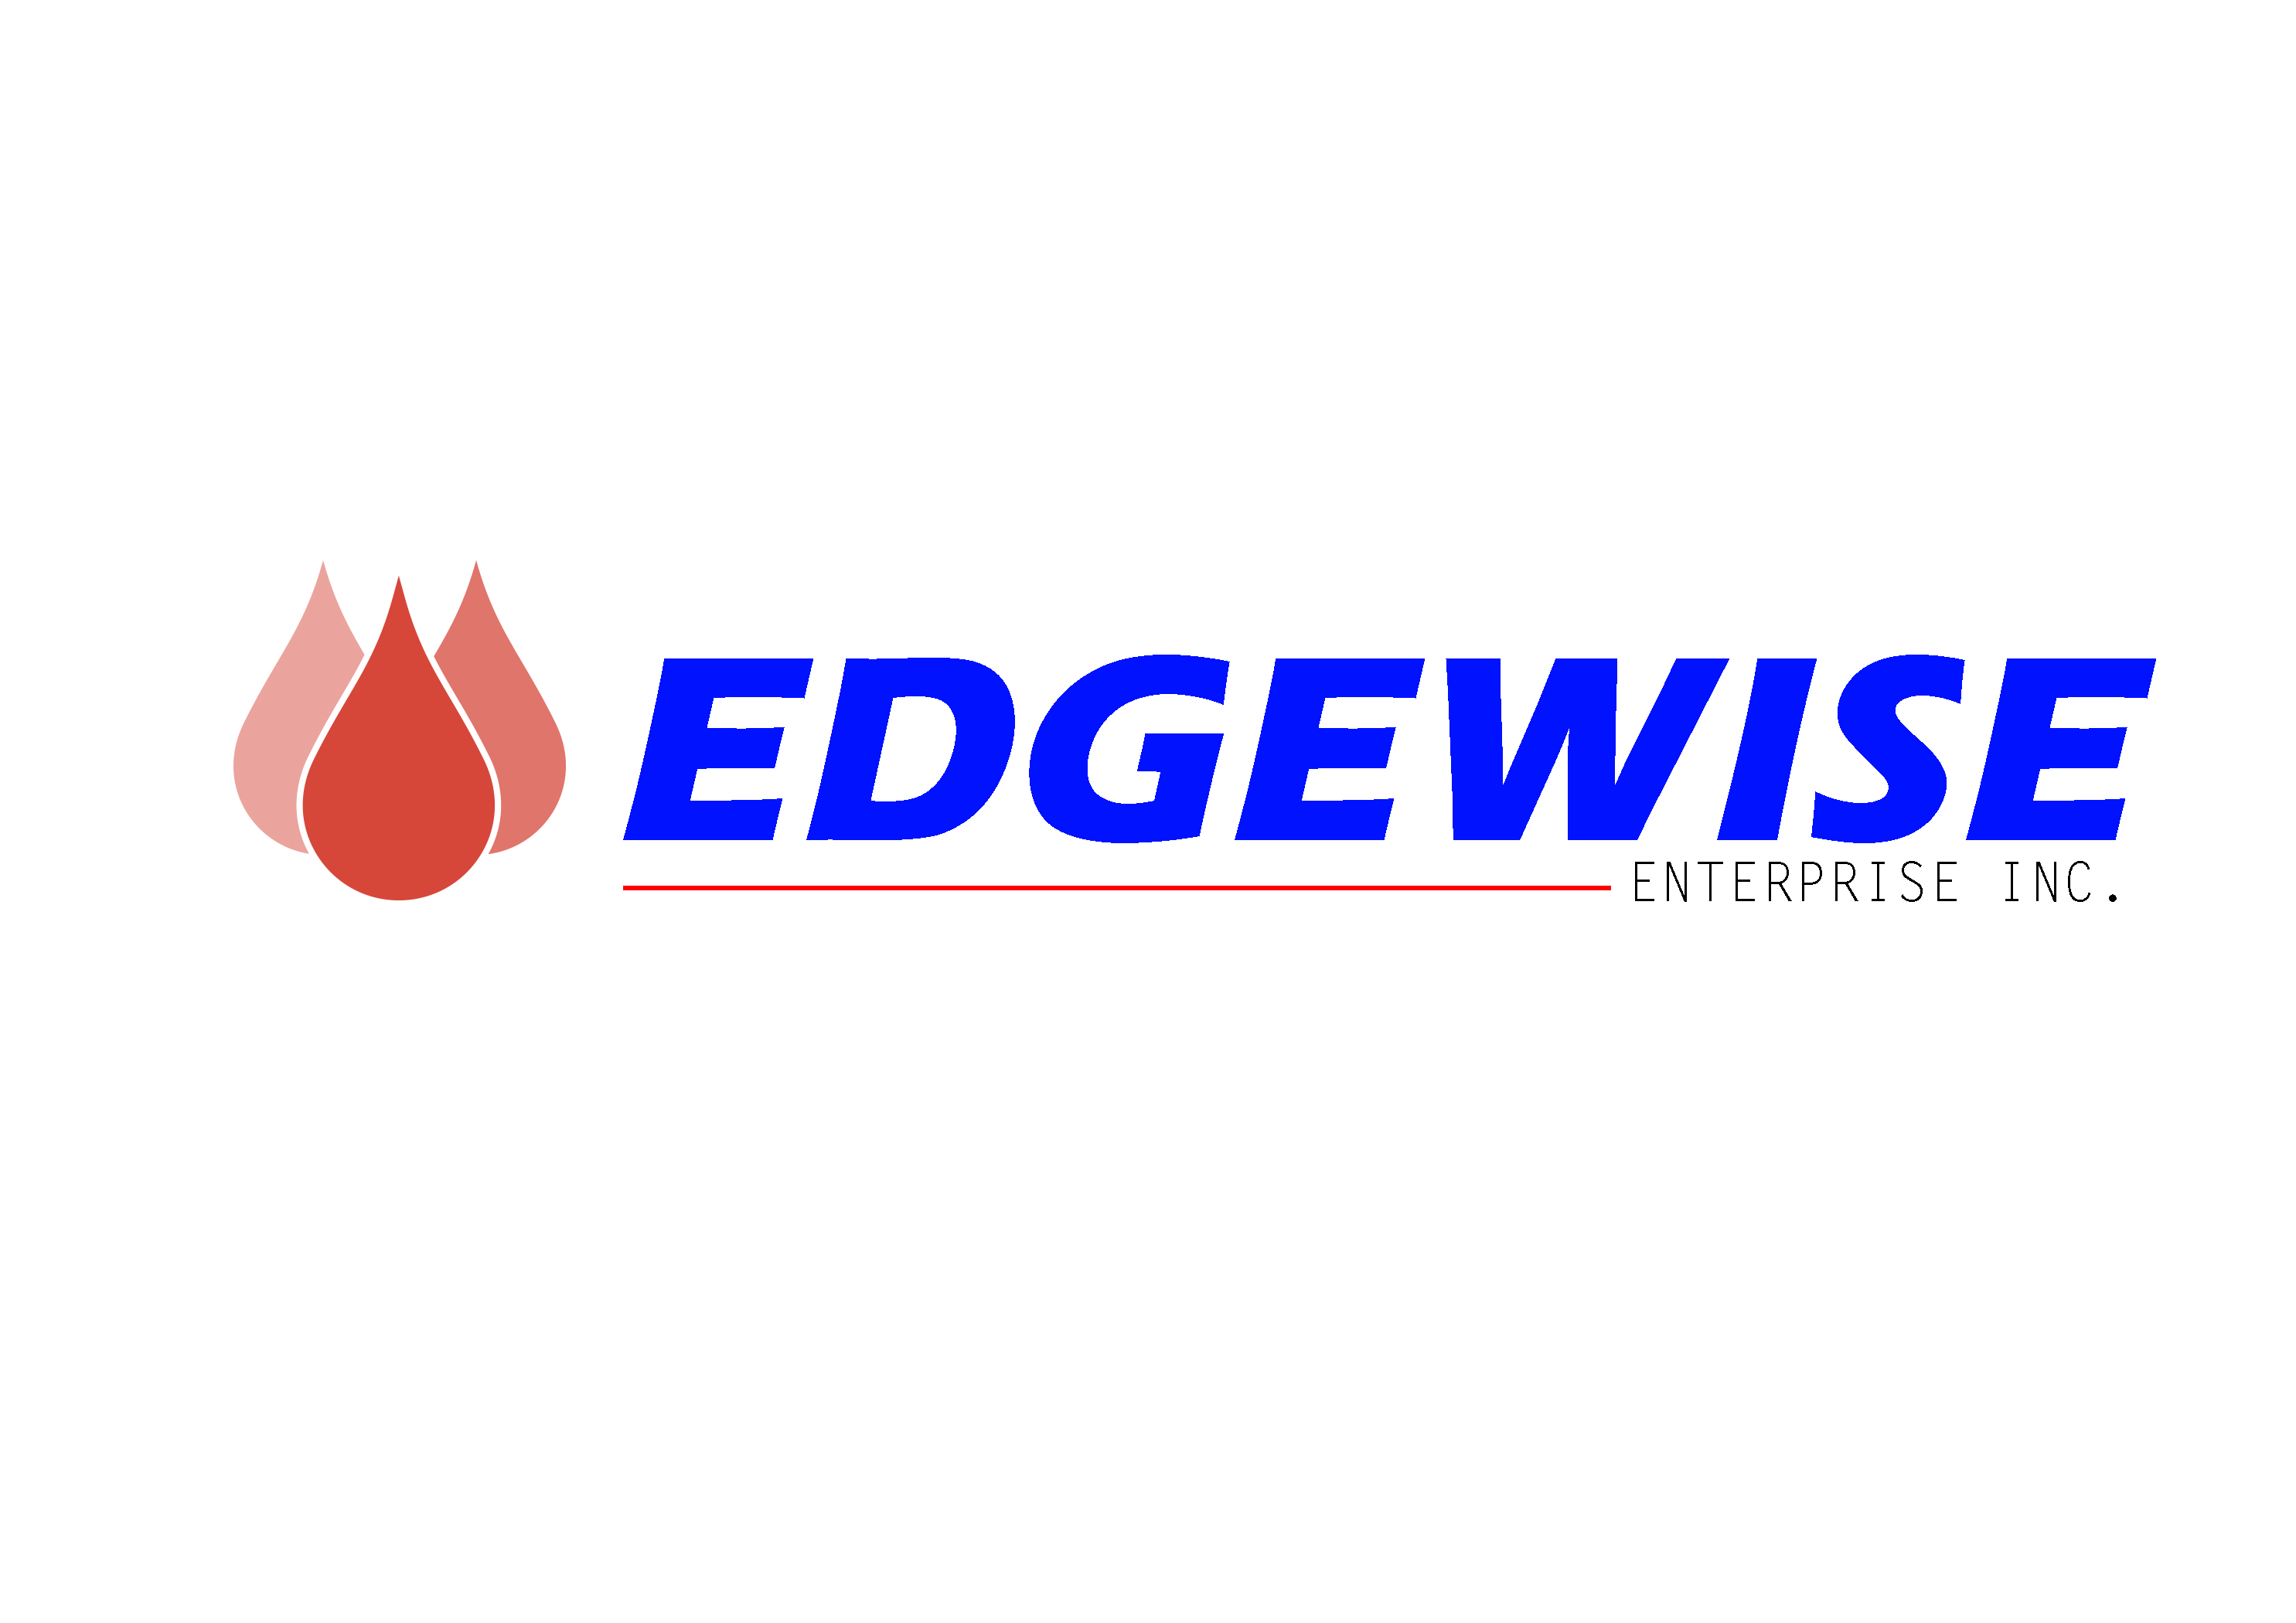 Logo Design by Oday Adel - Entry No. 11 in the Logo Design Contest New Logo Design for Edgewise Enterprises Inc..